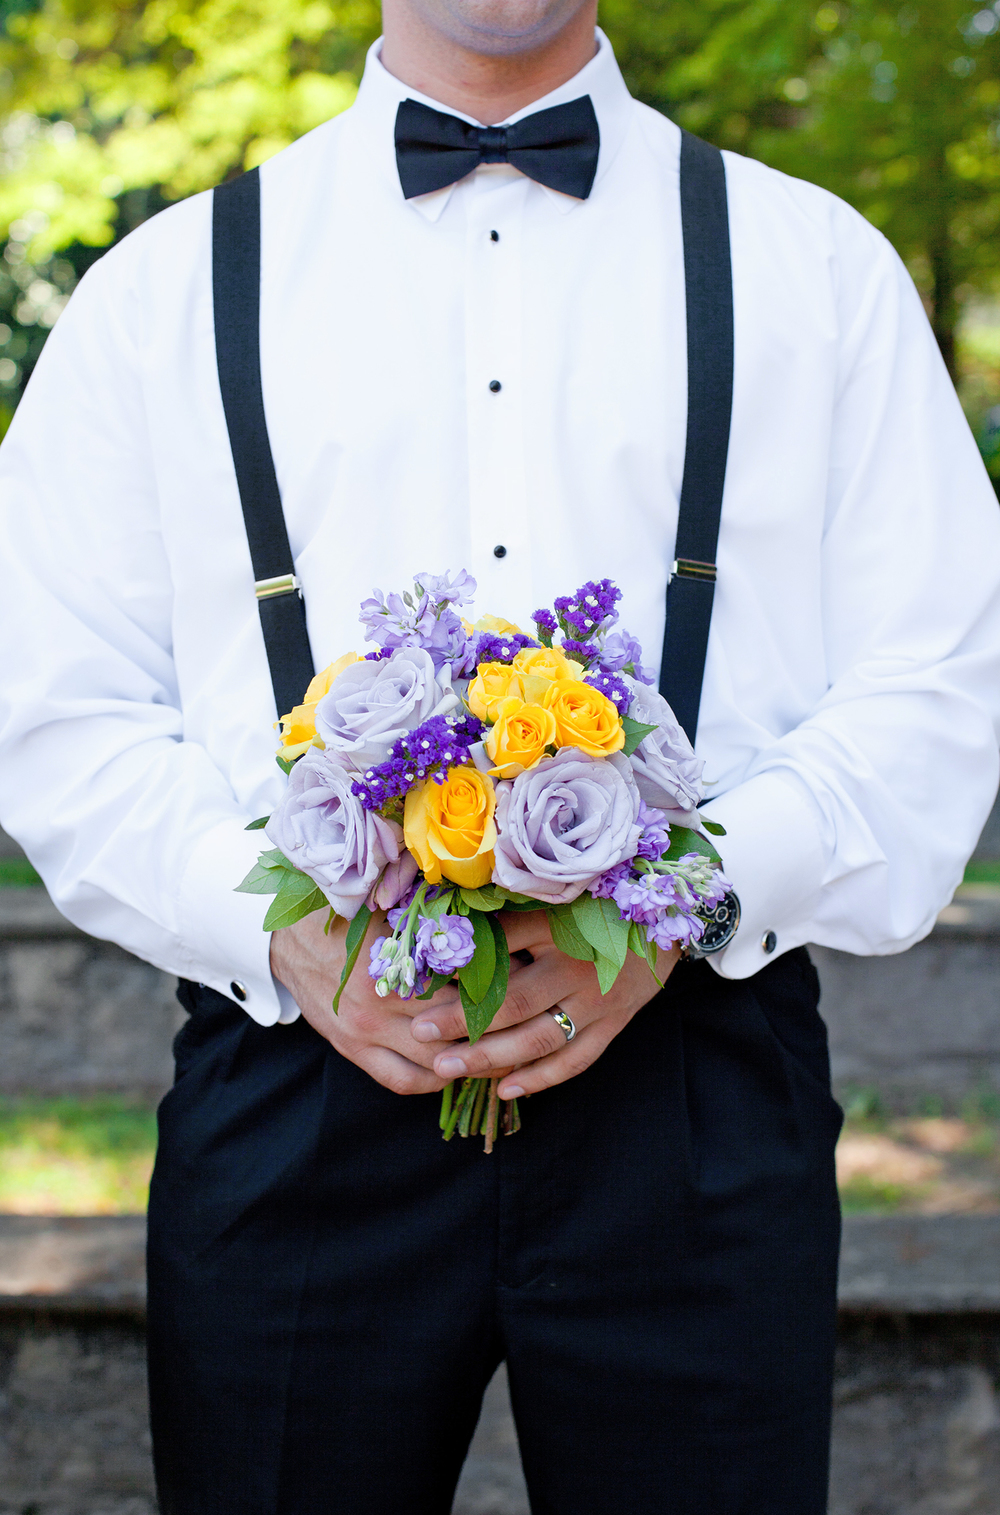 A Groom Holding a Purple & Yellow Bouquet